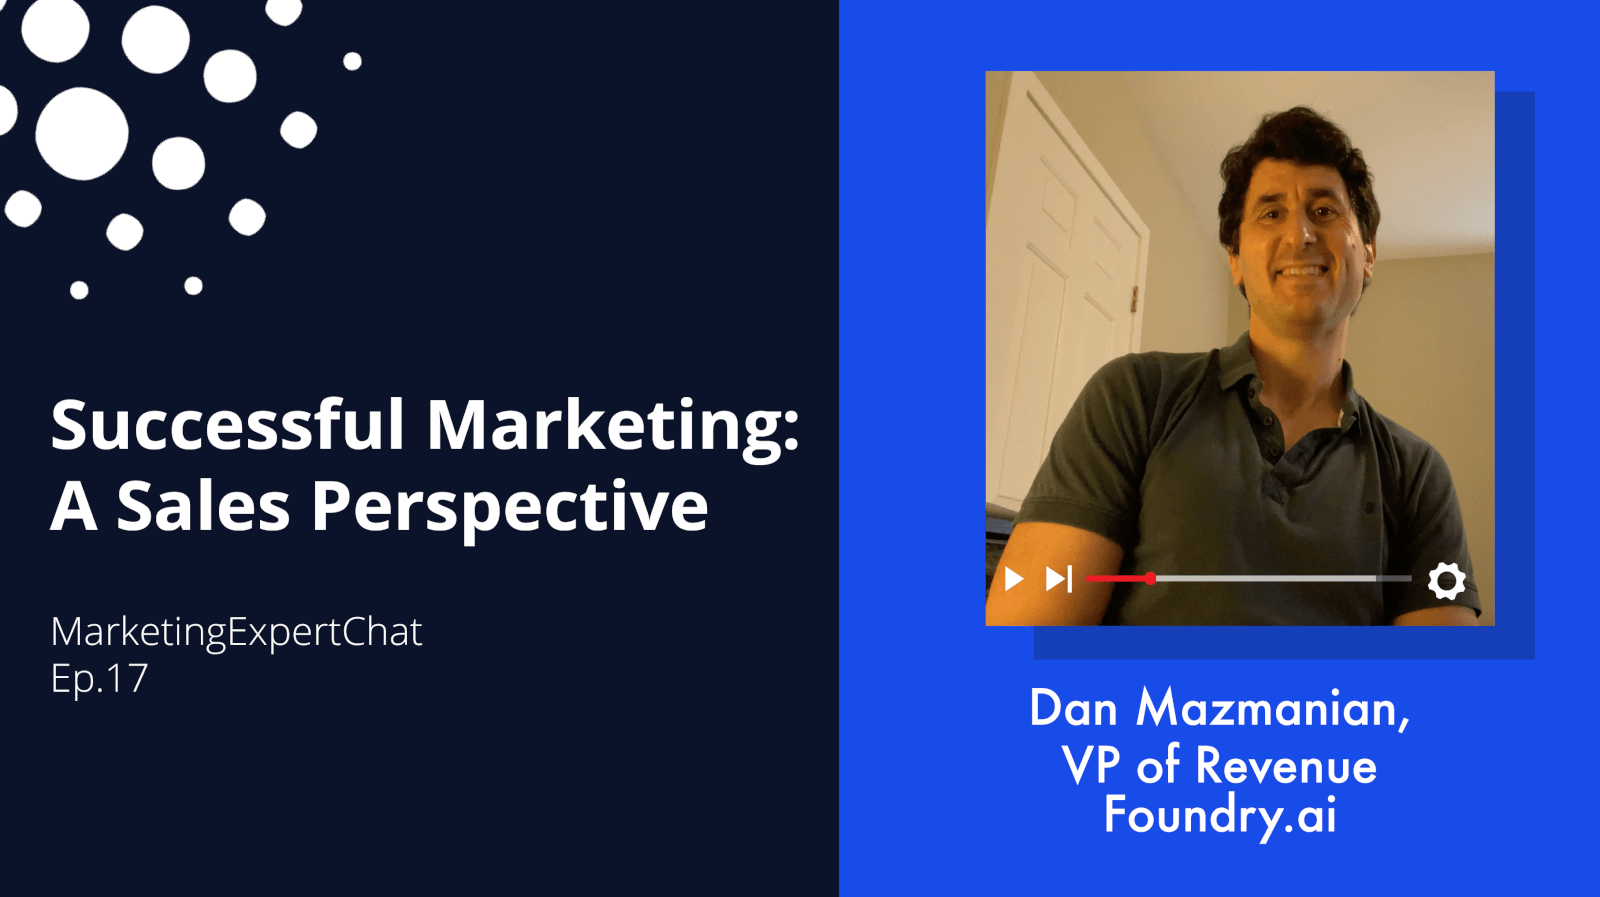 A Sales Perspective on the Meaning of Successful Marketing